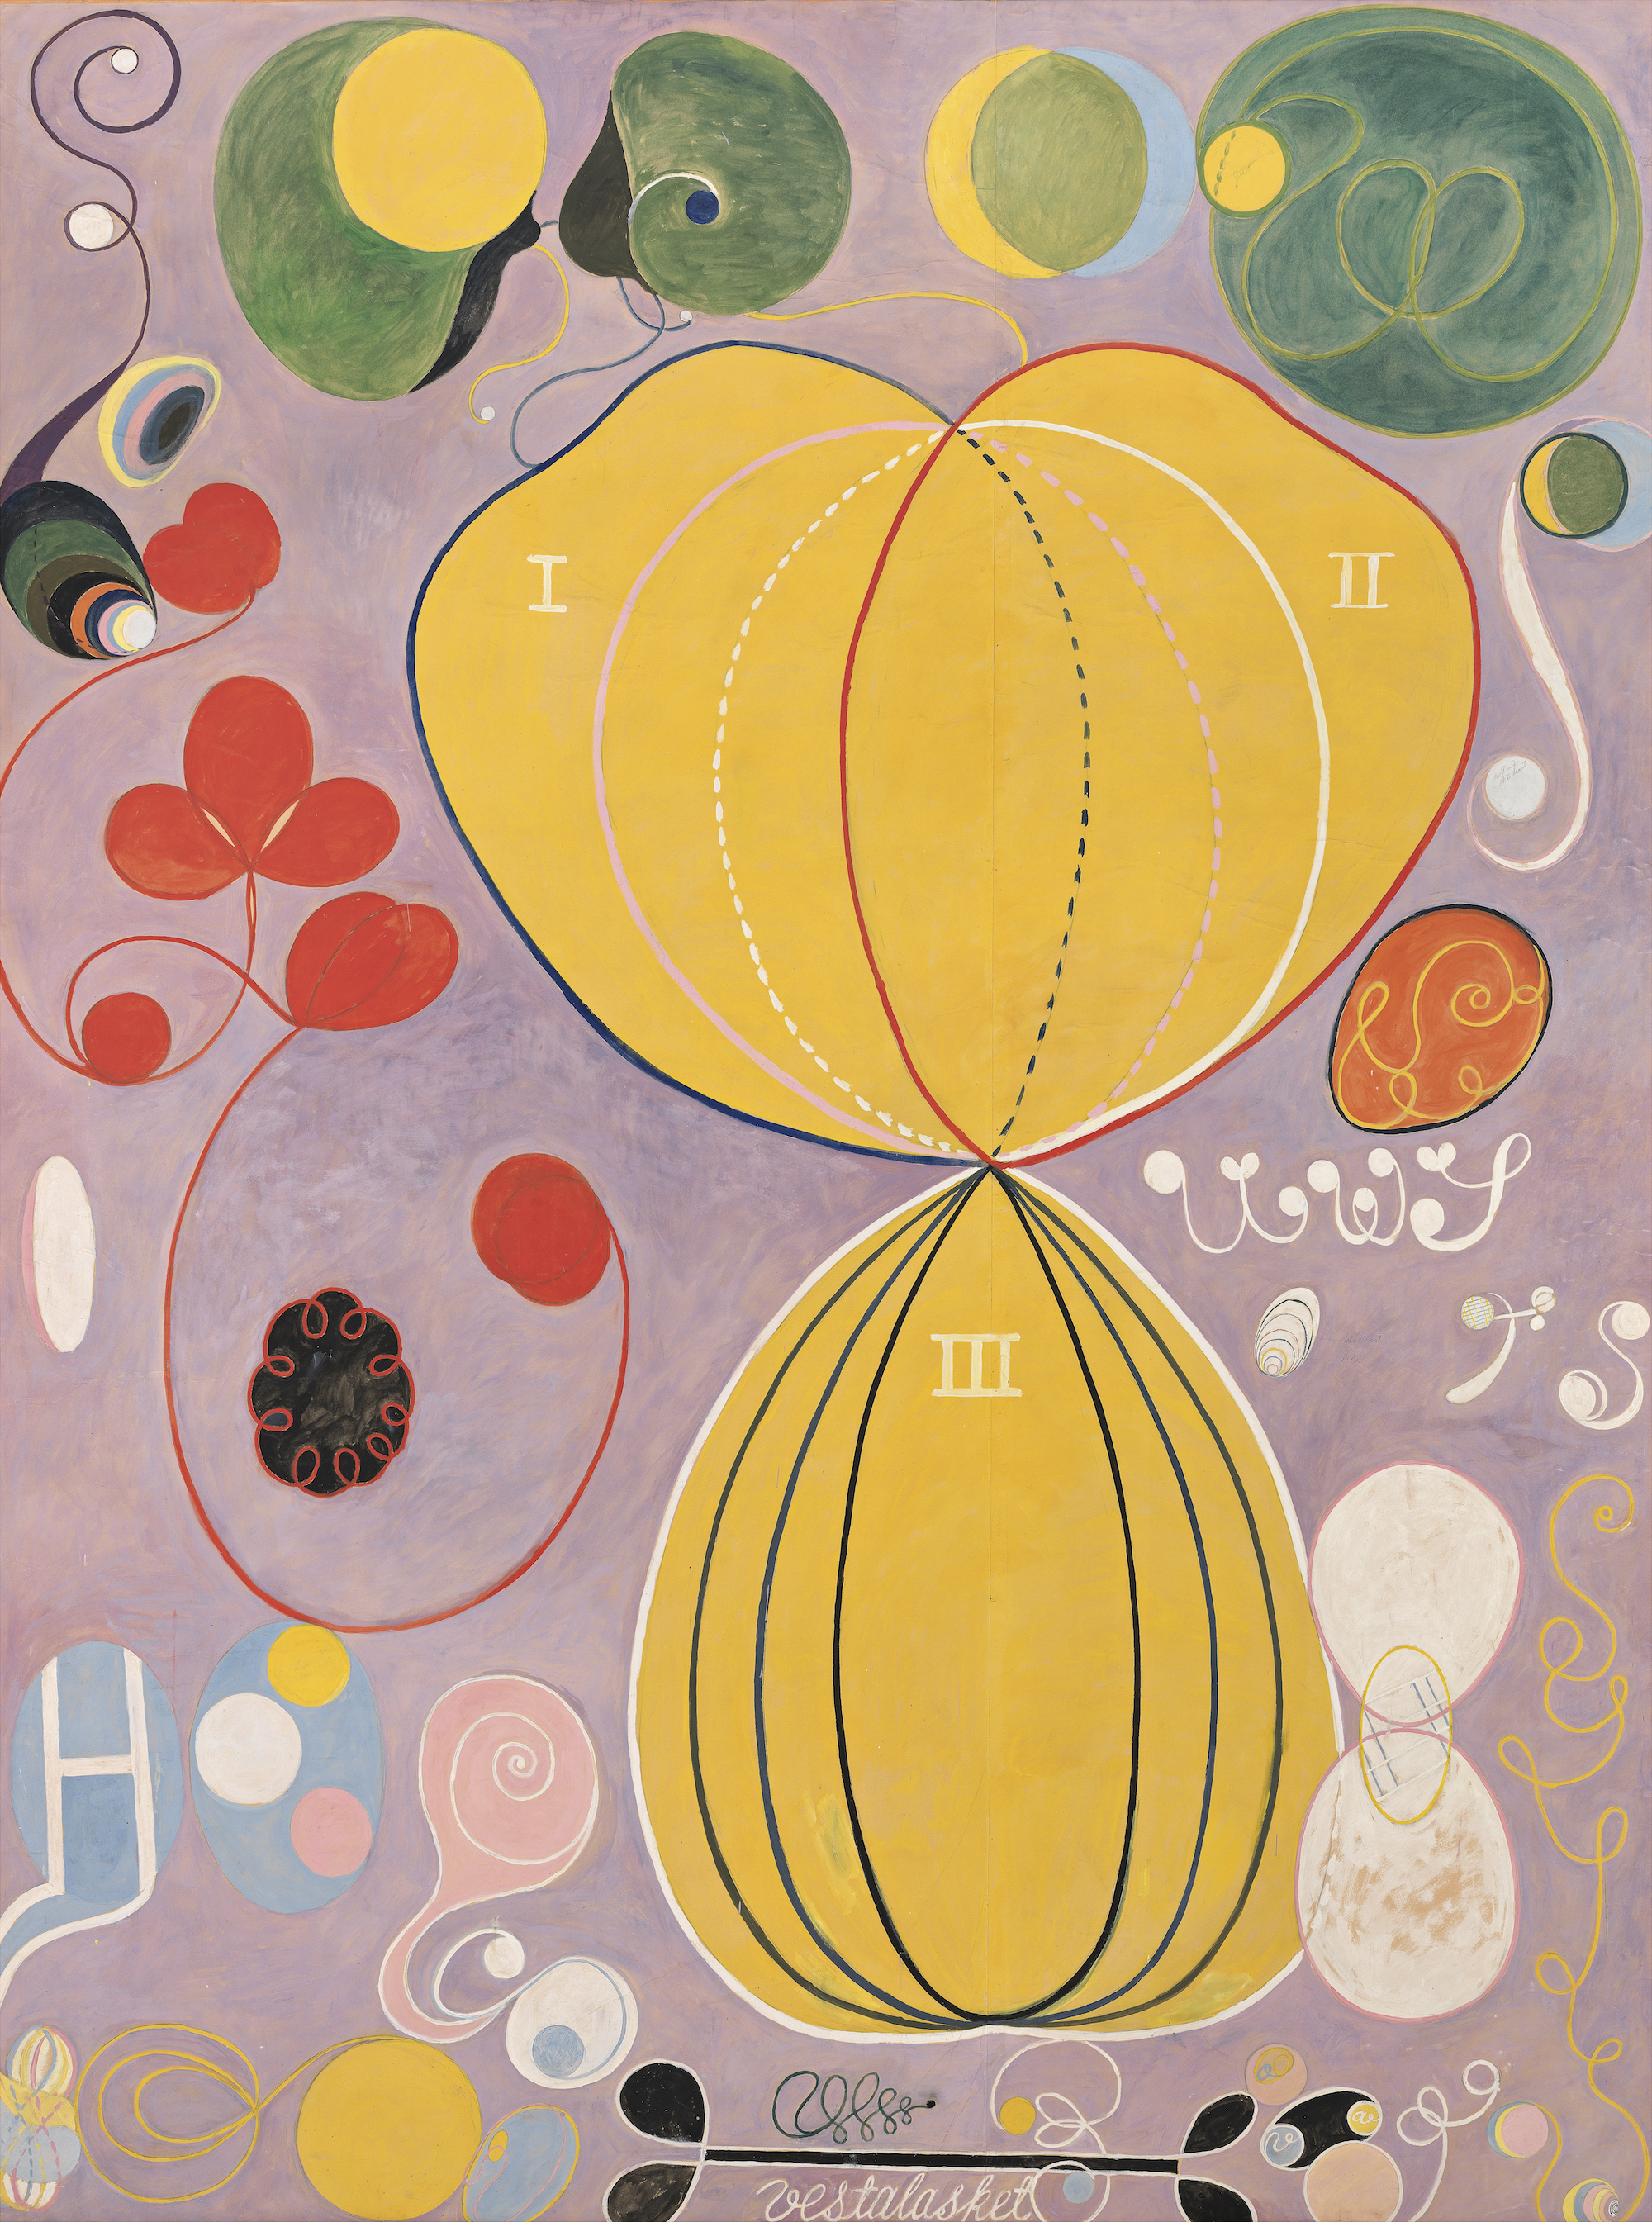 Hilma af Klint The Ten Largest, No. 7., Adulthood, Group IV, 1907. Courtesy The Hilma af Klint Foundation, Stockholm